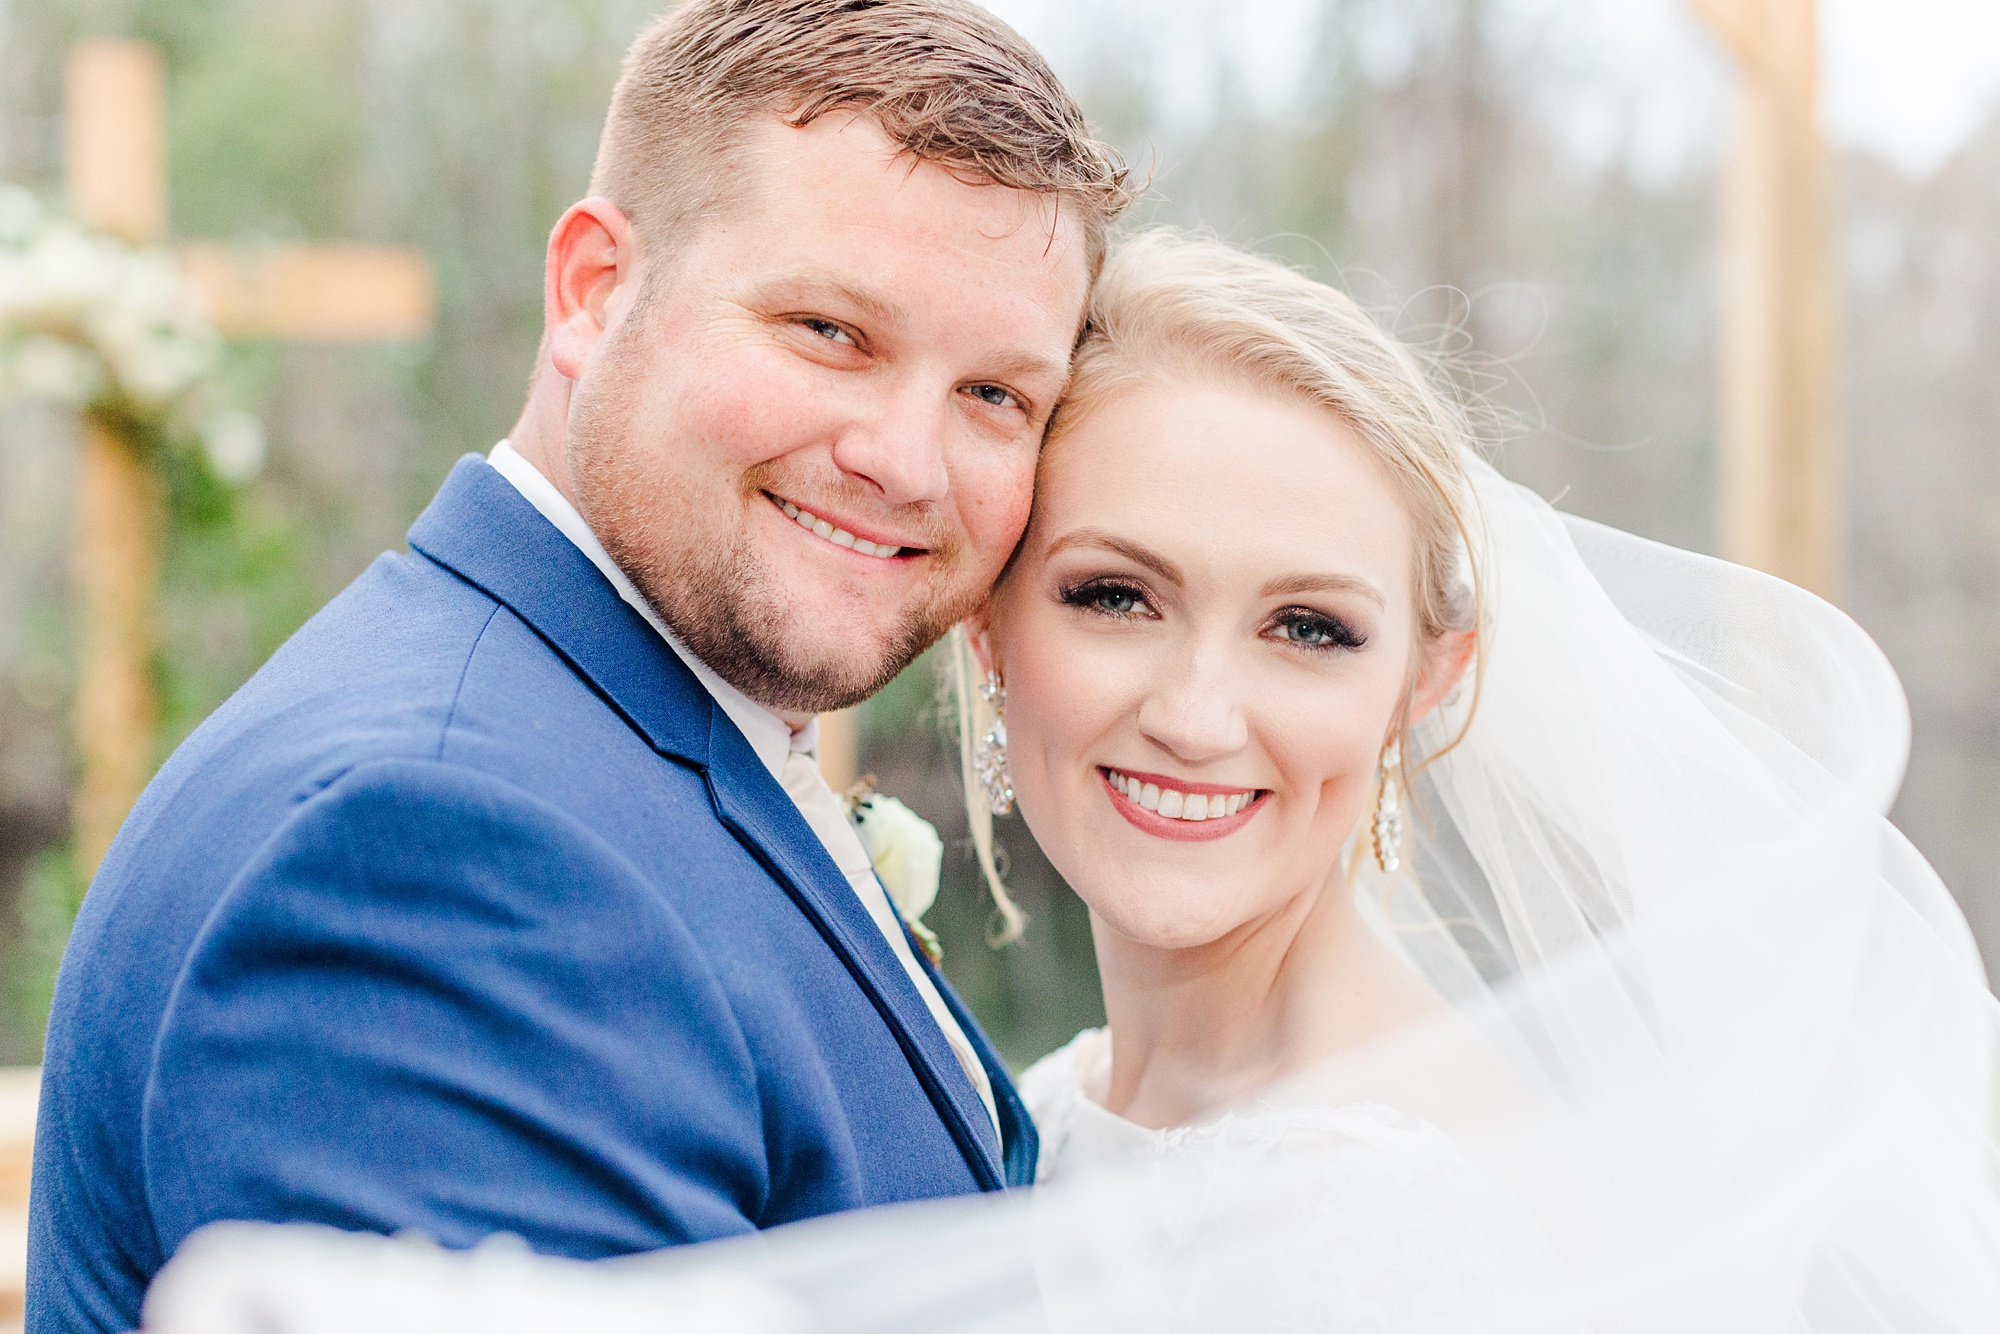 bride and groom pose with heads touching as veil floats around them